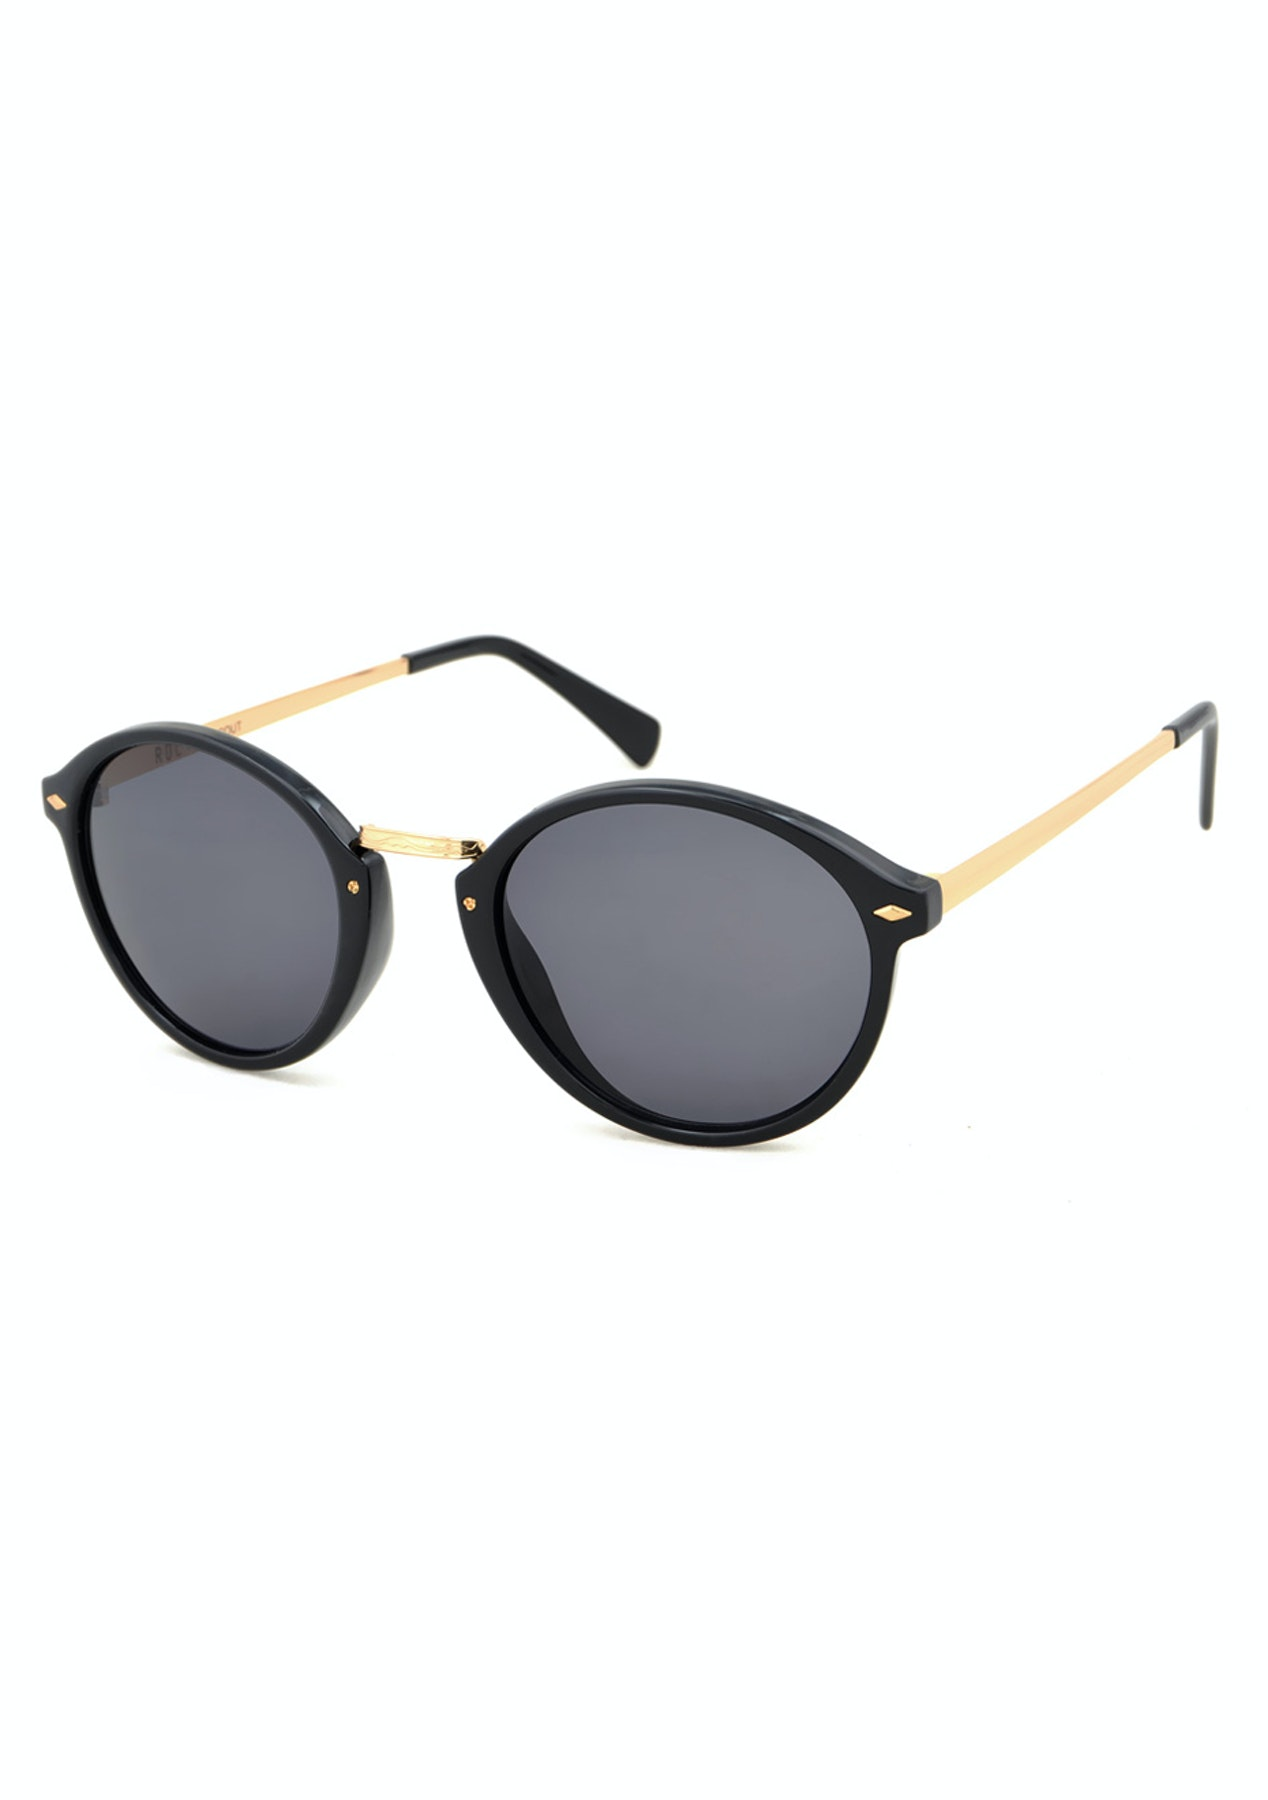 582998585a ROC - Scout - Black - Sunglasses Steals from  9.95 - Onceit